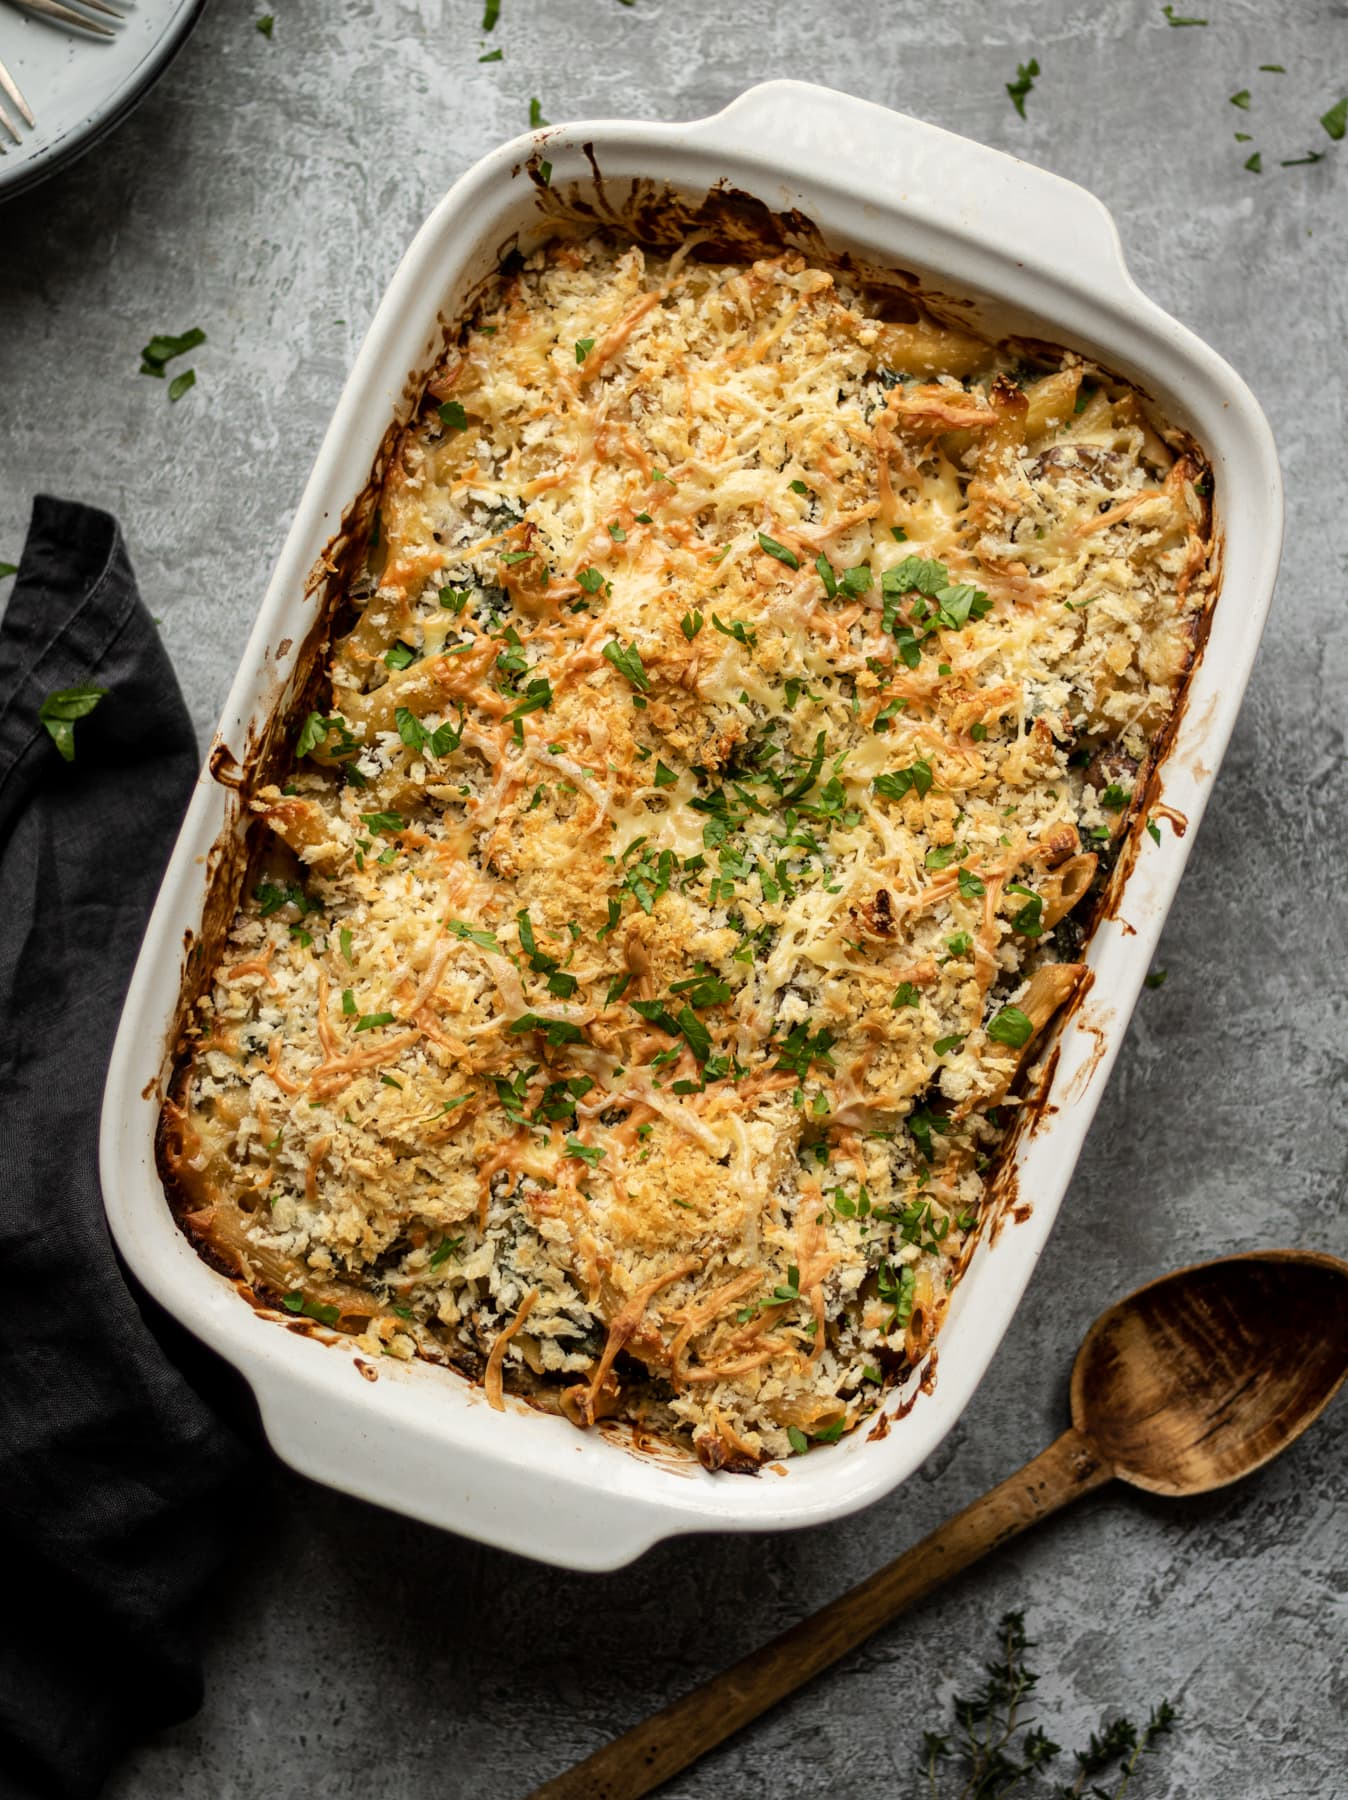 Creamy Mushroom Pasta Bake With Kale The Last Food Blog